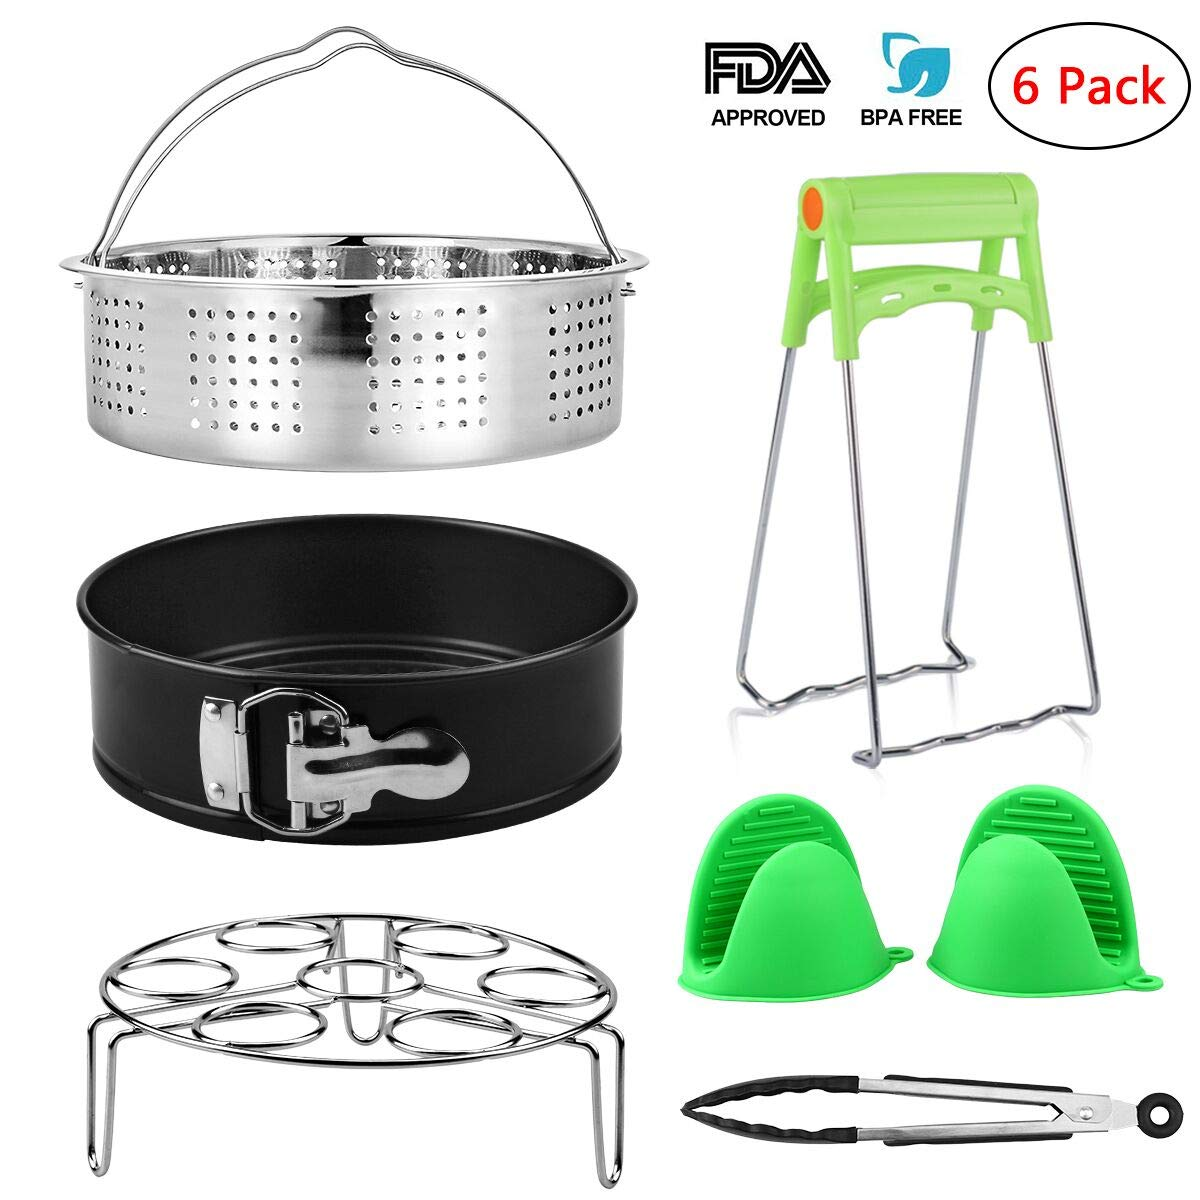 Instant Pot Accessories with Steamer Basket, Non-stick Springform Pan/Cheesecake Pan, Egg Steamer Rack, Oven Mitts, Silicone Kitchen Tongs - Fits 5,6,8 Quart Instant Pot Pressure Cooker, Set of 6